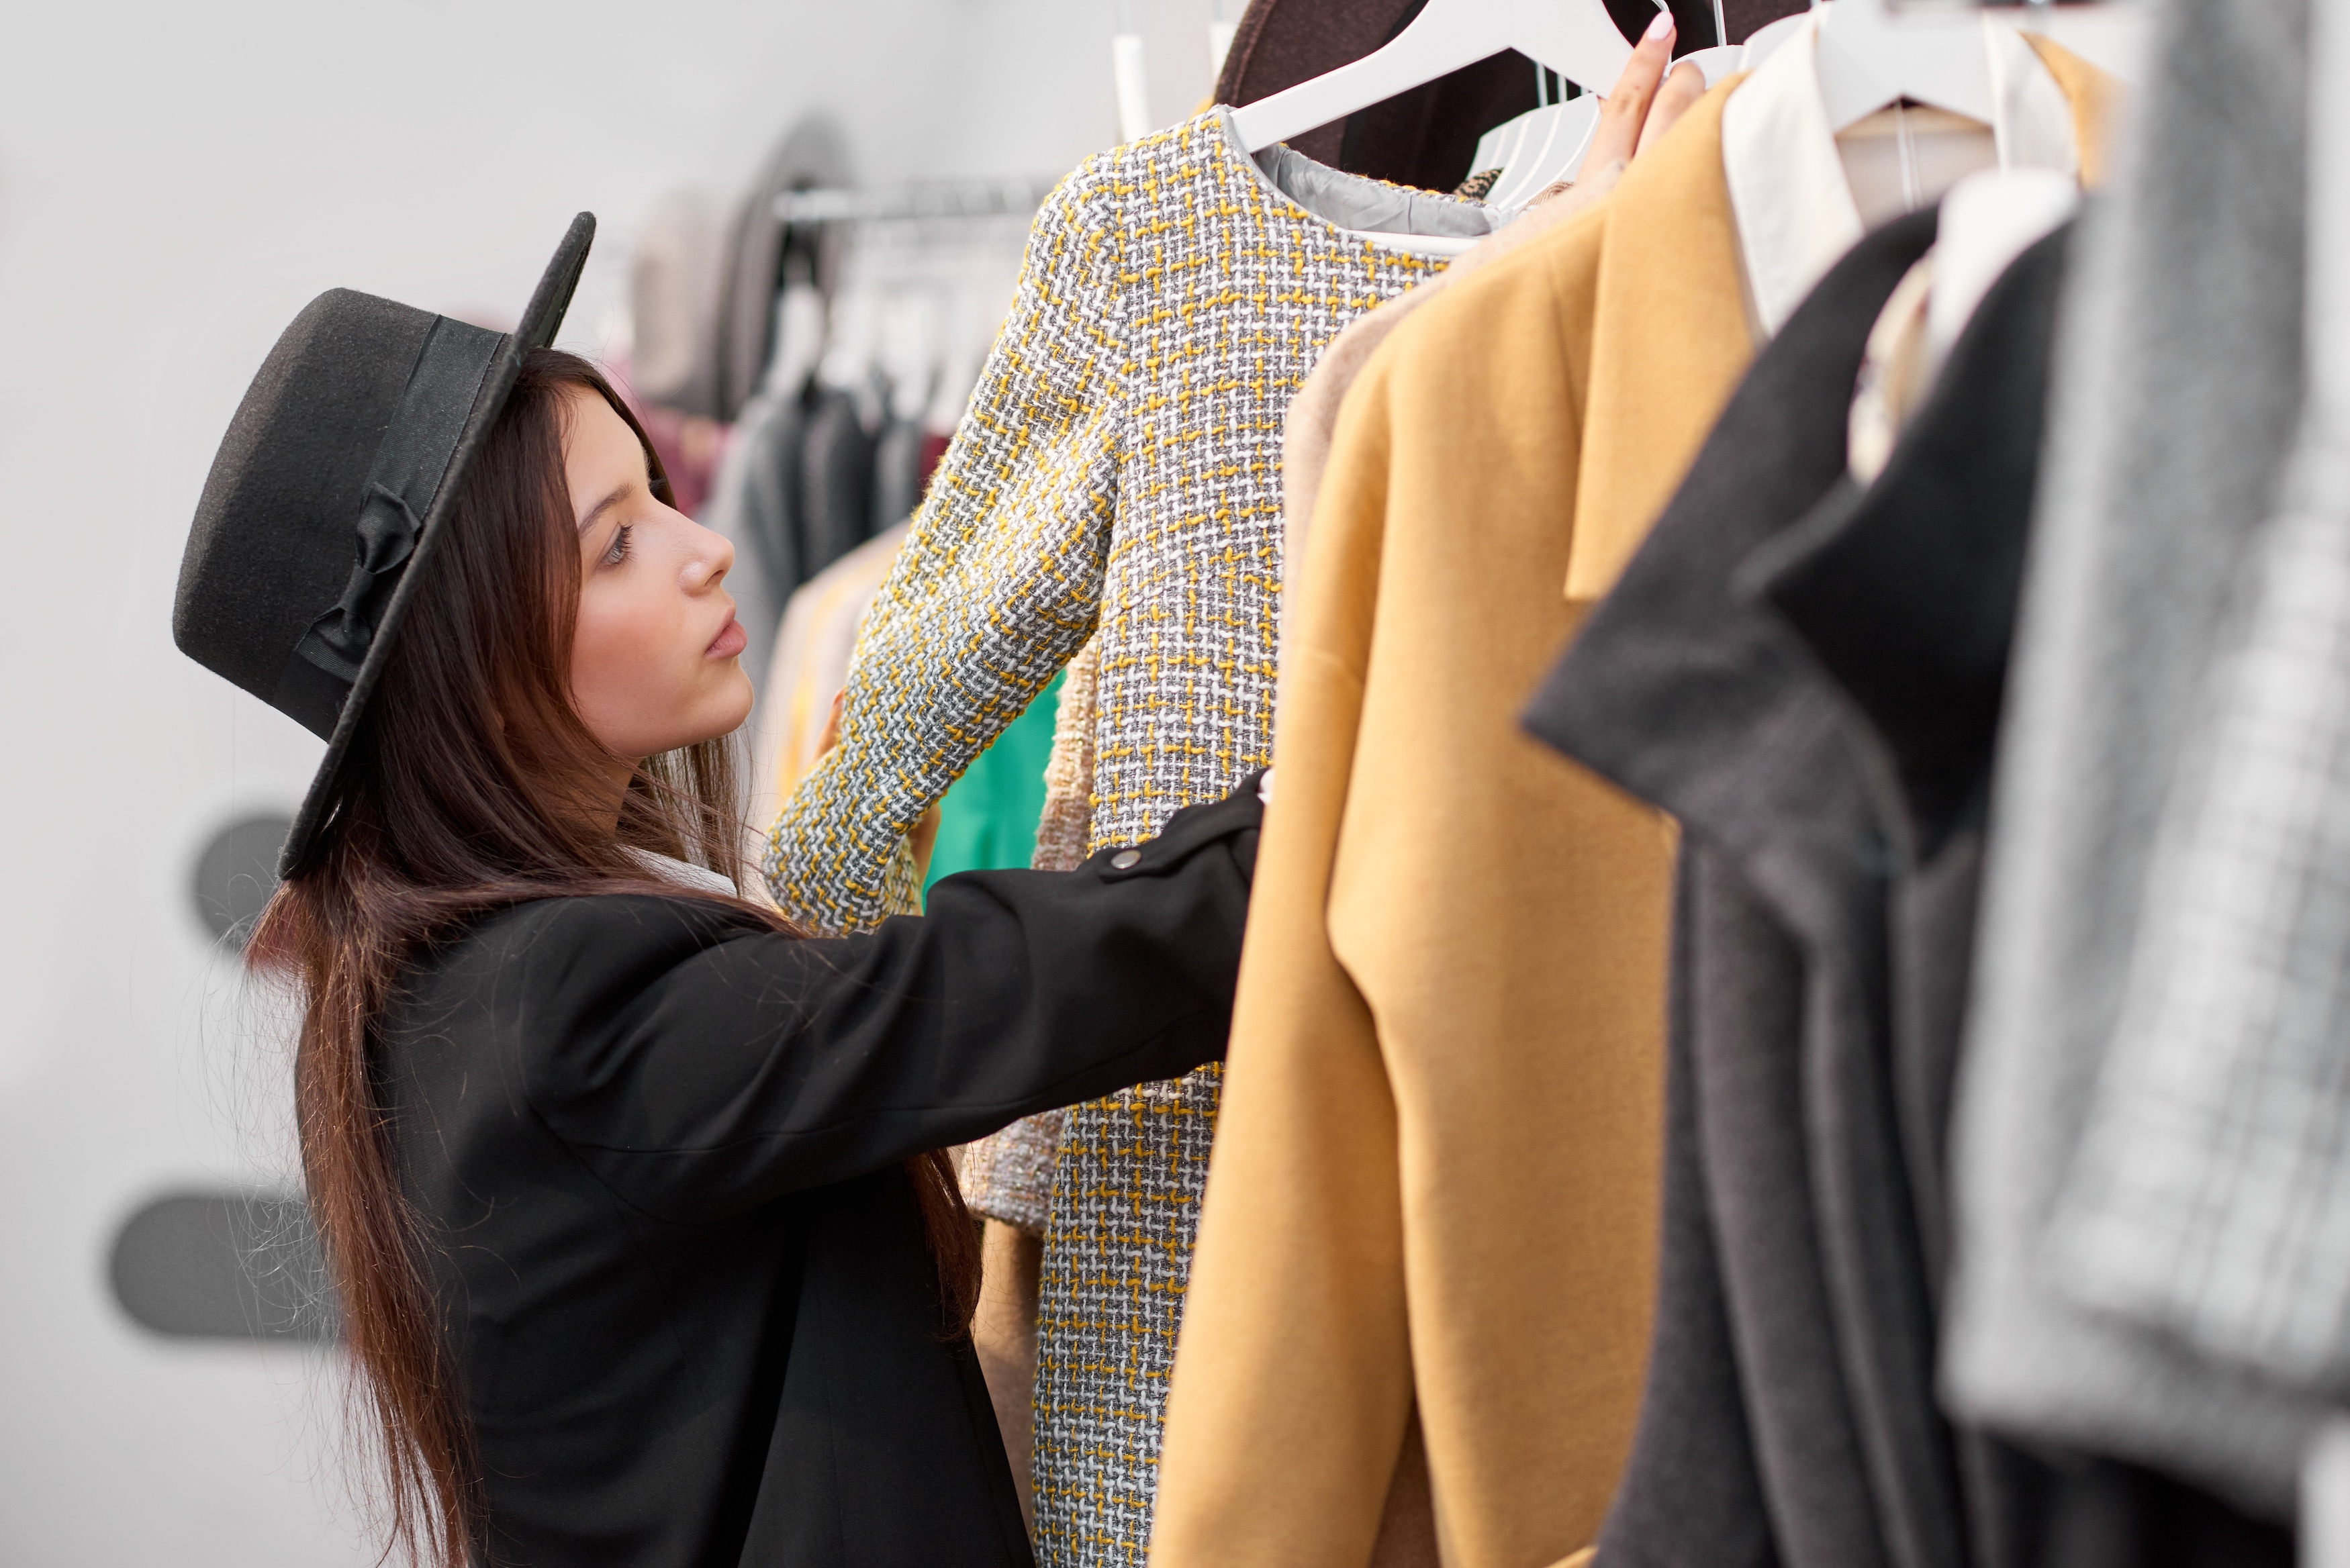 4 Valuable Takeaways From Retail Job Experience - Style Nine to Five